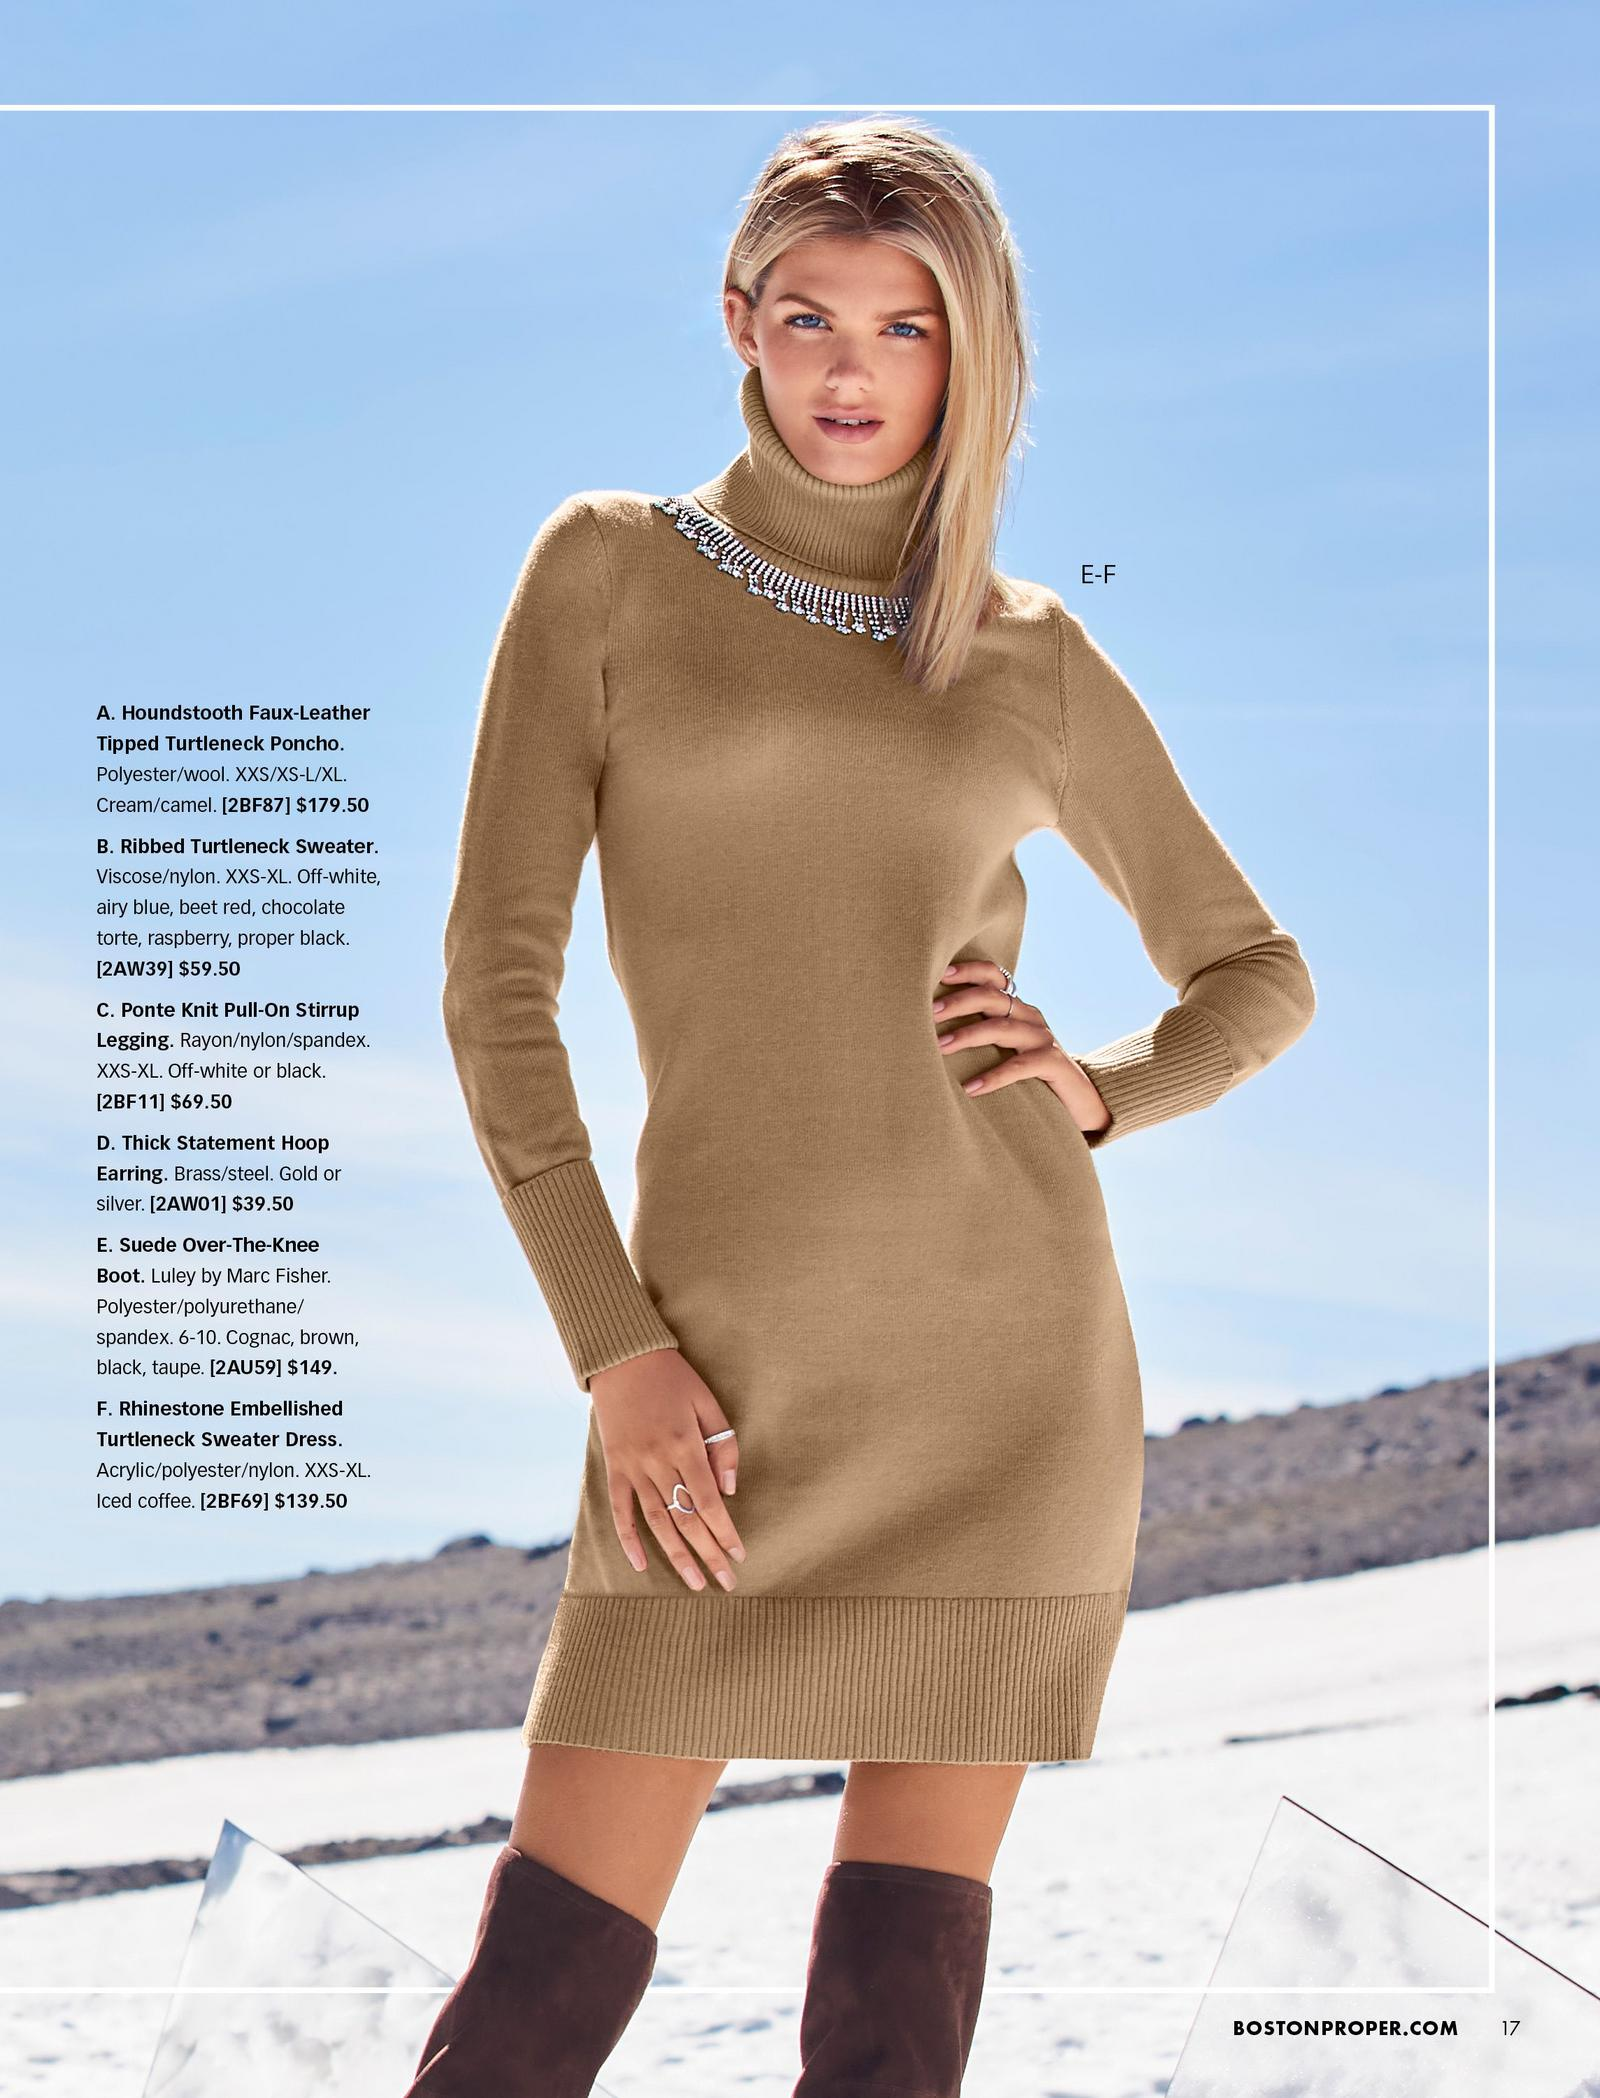 model wearing a tan turtleneck long-sleeve sweater dress with rhinestone embellishments by the collar and brown over-the-knee suede boots.